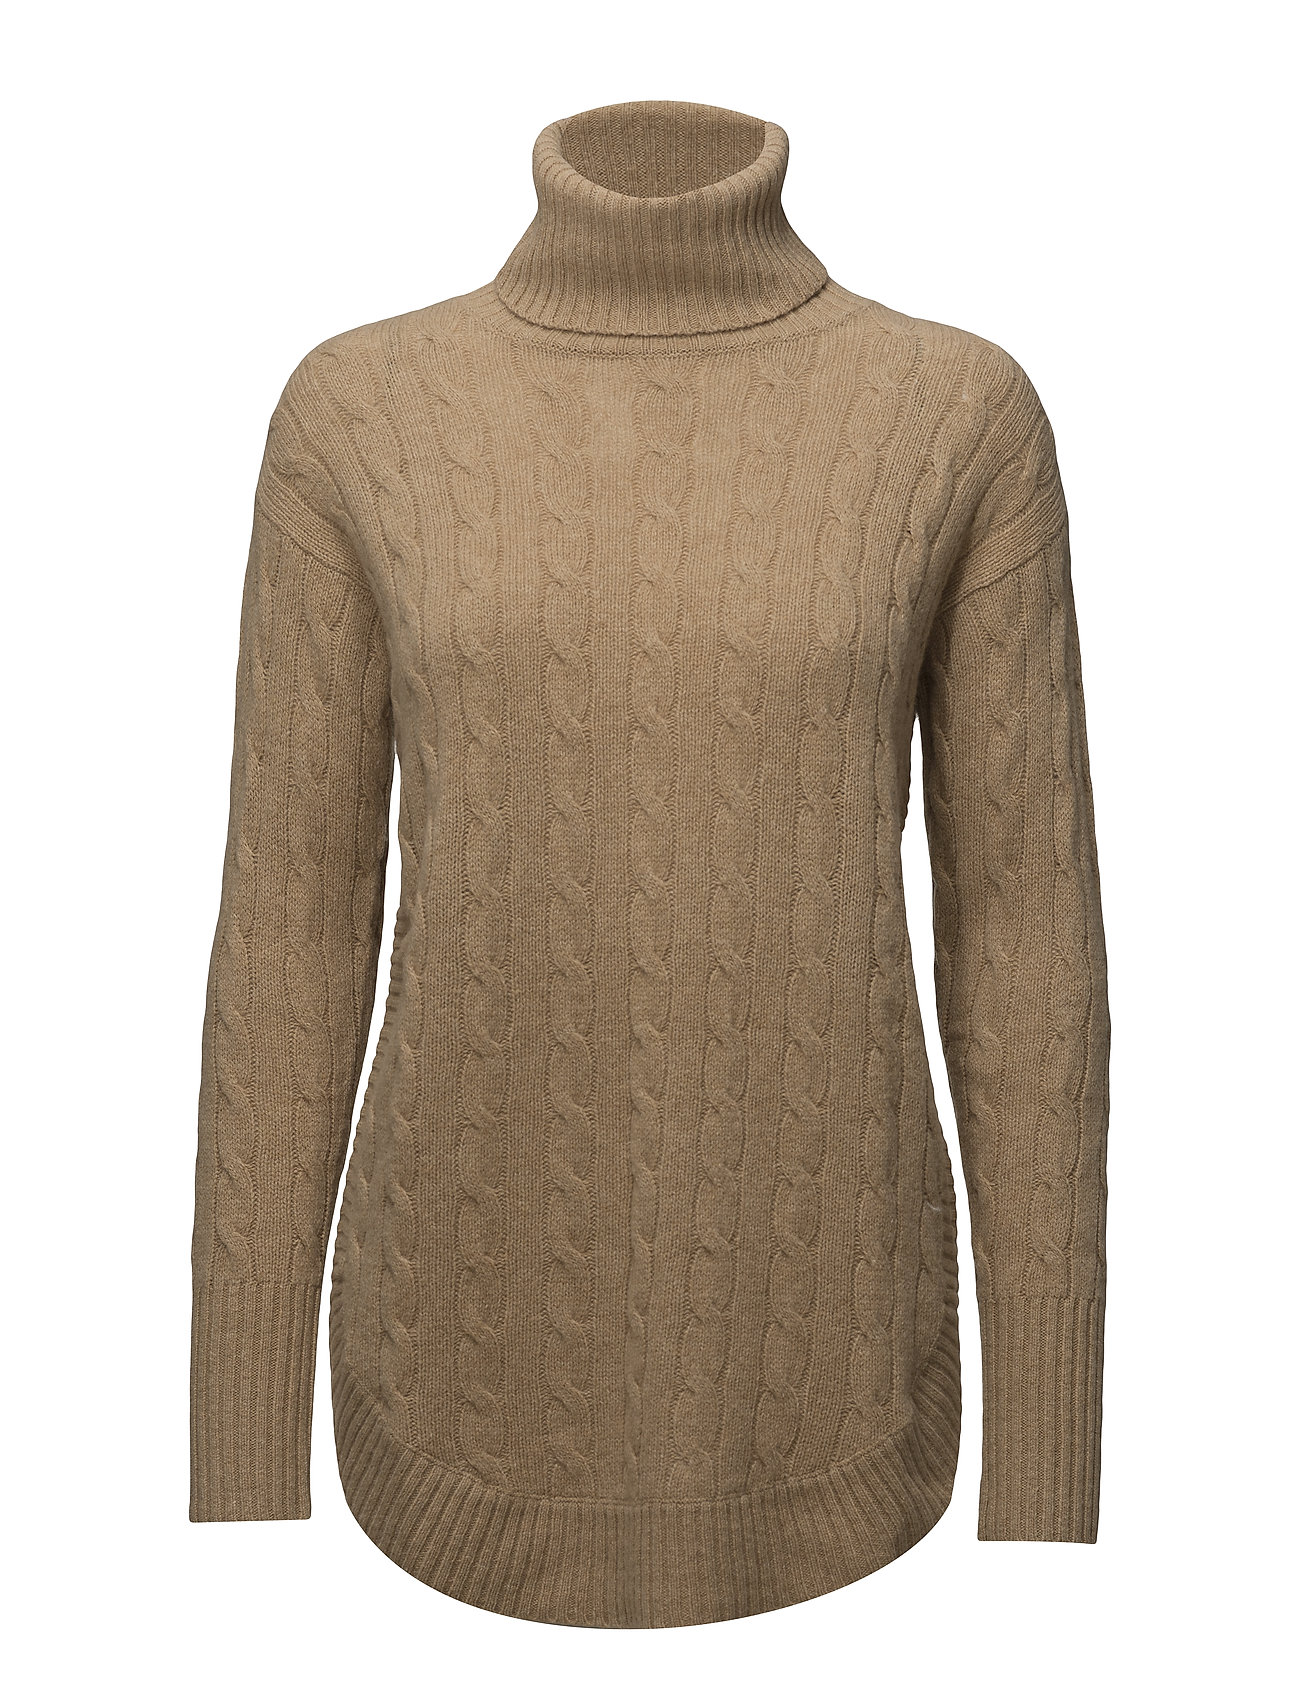 Turtleneck Cable-knit Sweater (Camel Melange) (£145) - Polo Ralph ...